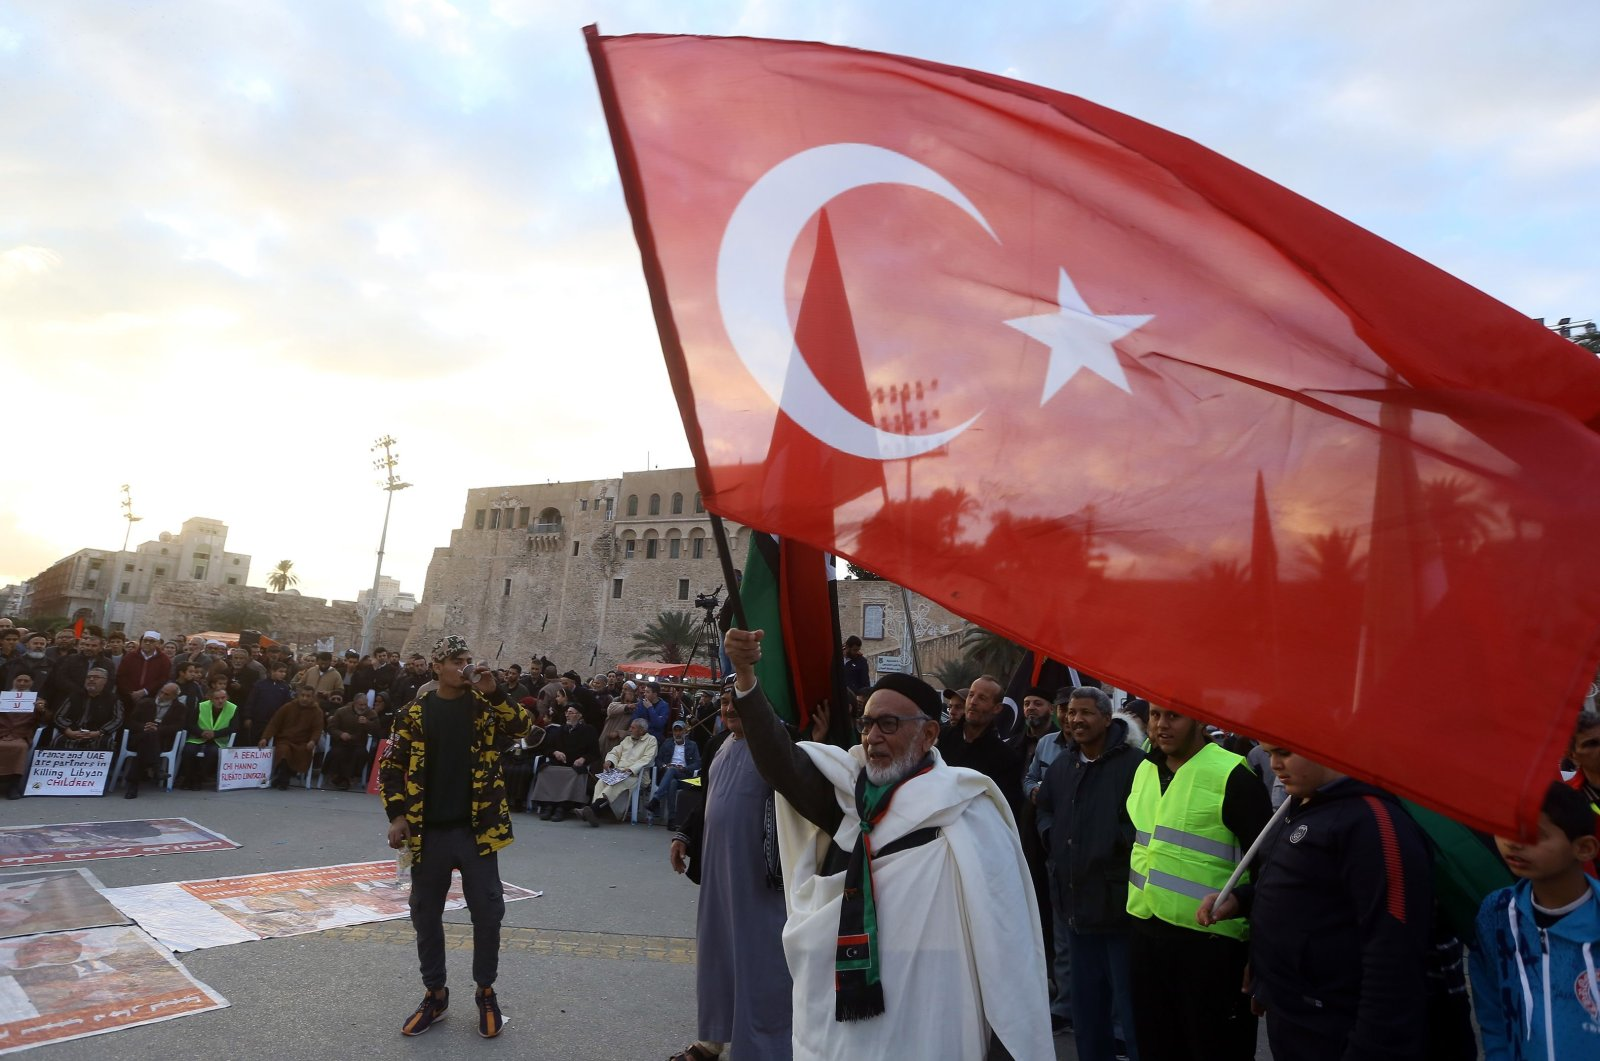 Demonstrators wave a large Turkish flag in a rally against putschist Gen. Khalifa Haftar and in support of the U.N.-recognised Government of National Accord (GNA) in Martyrs' Square in the GNA-held capital Tripoli, Jan. 10, 2020. (AFP Photo)